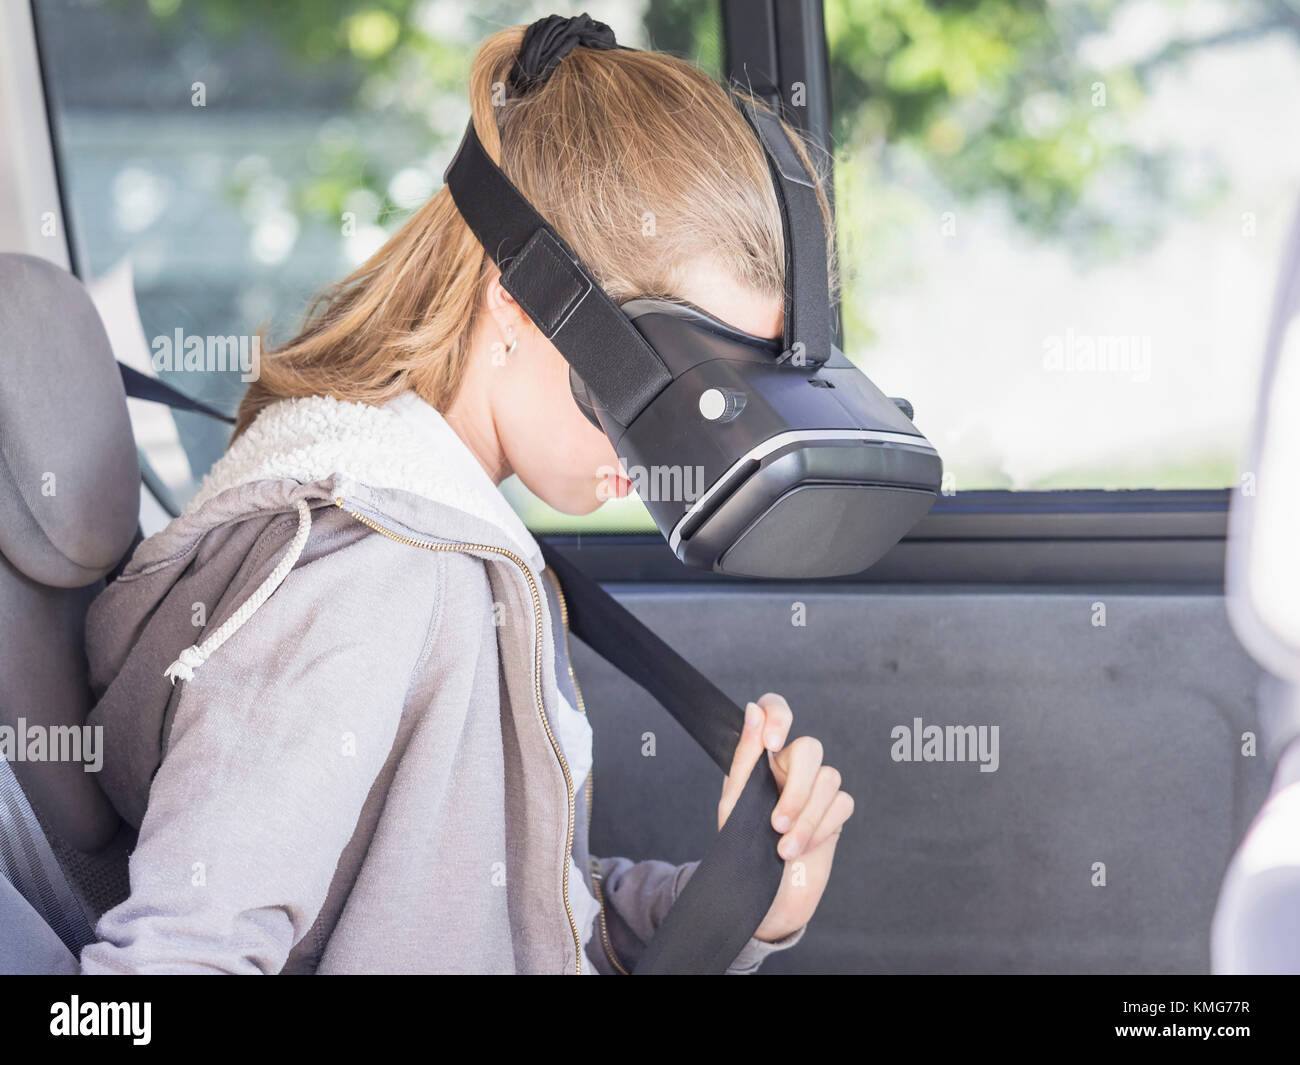 Girl using virtual reality headset while adjusting car seatbelt - Stock Image